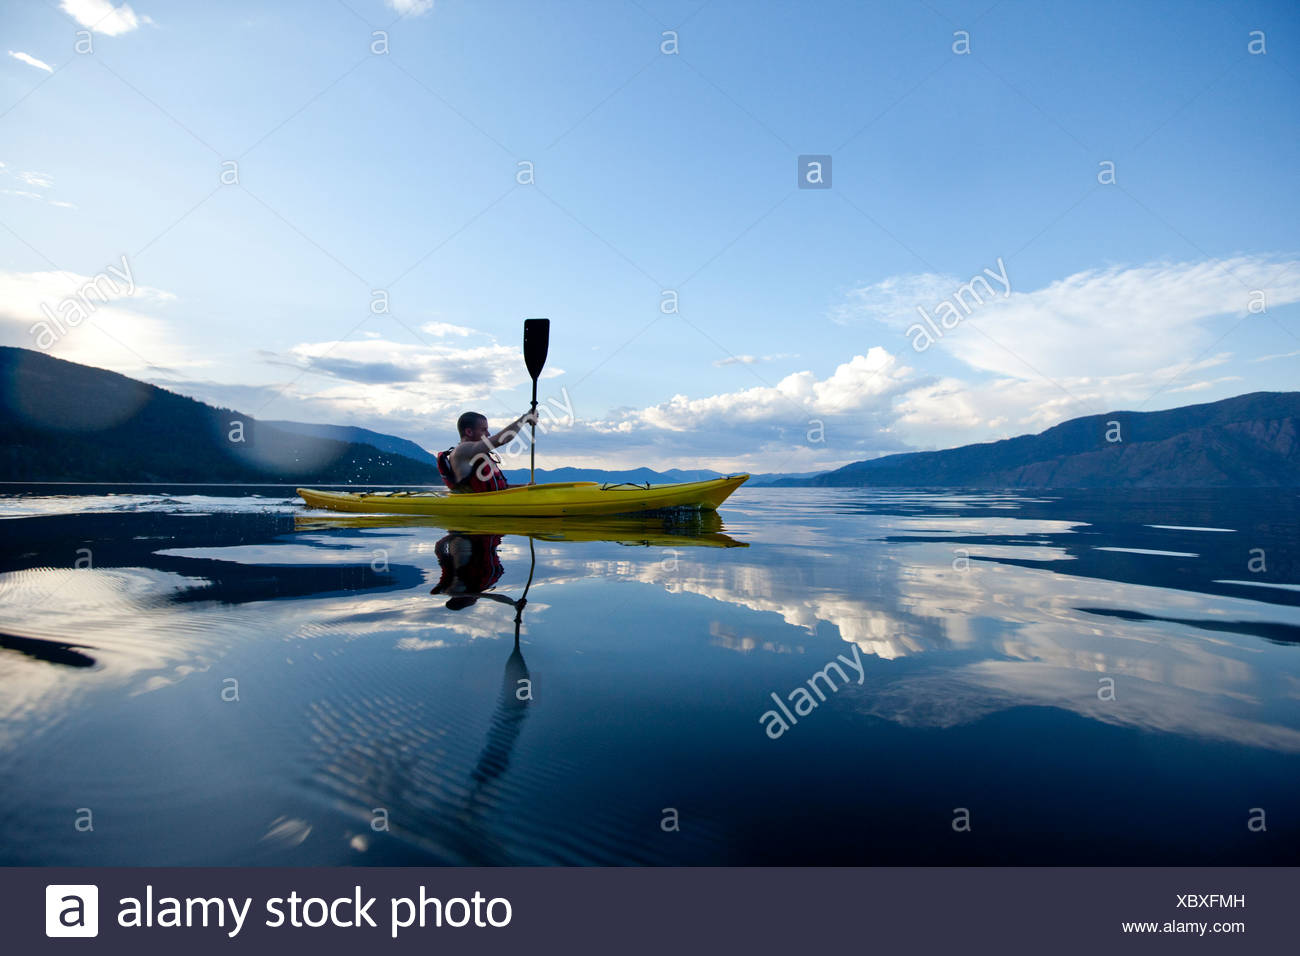 Young man paddles yellow kayak on lake. - Stock Image